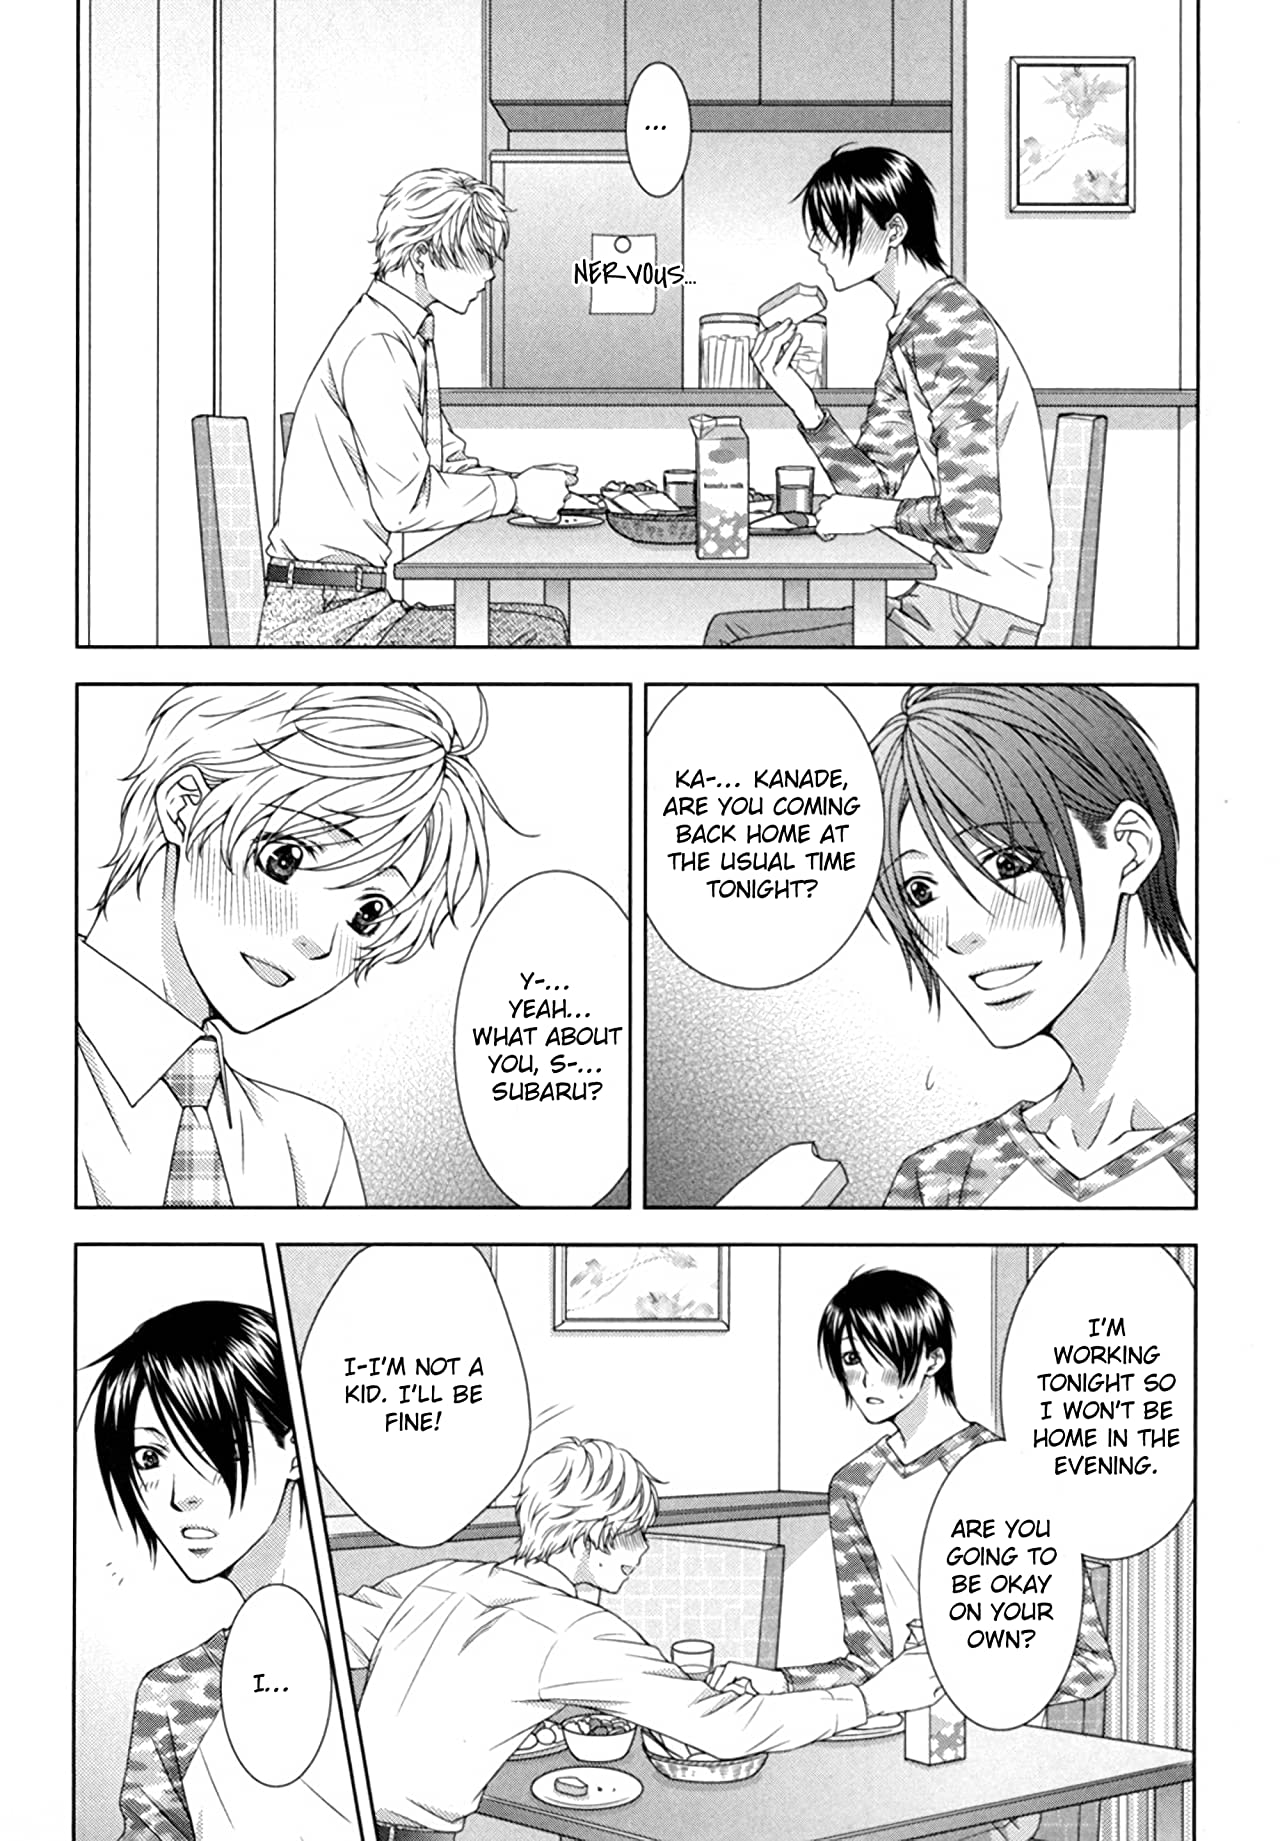 Why Don't We Start By Sharing For Now? (Yaoi Manga) Vol. 2